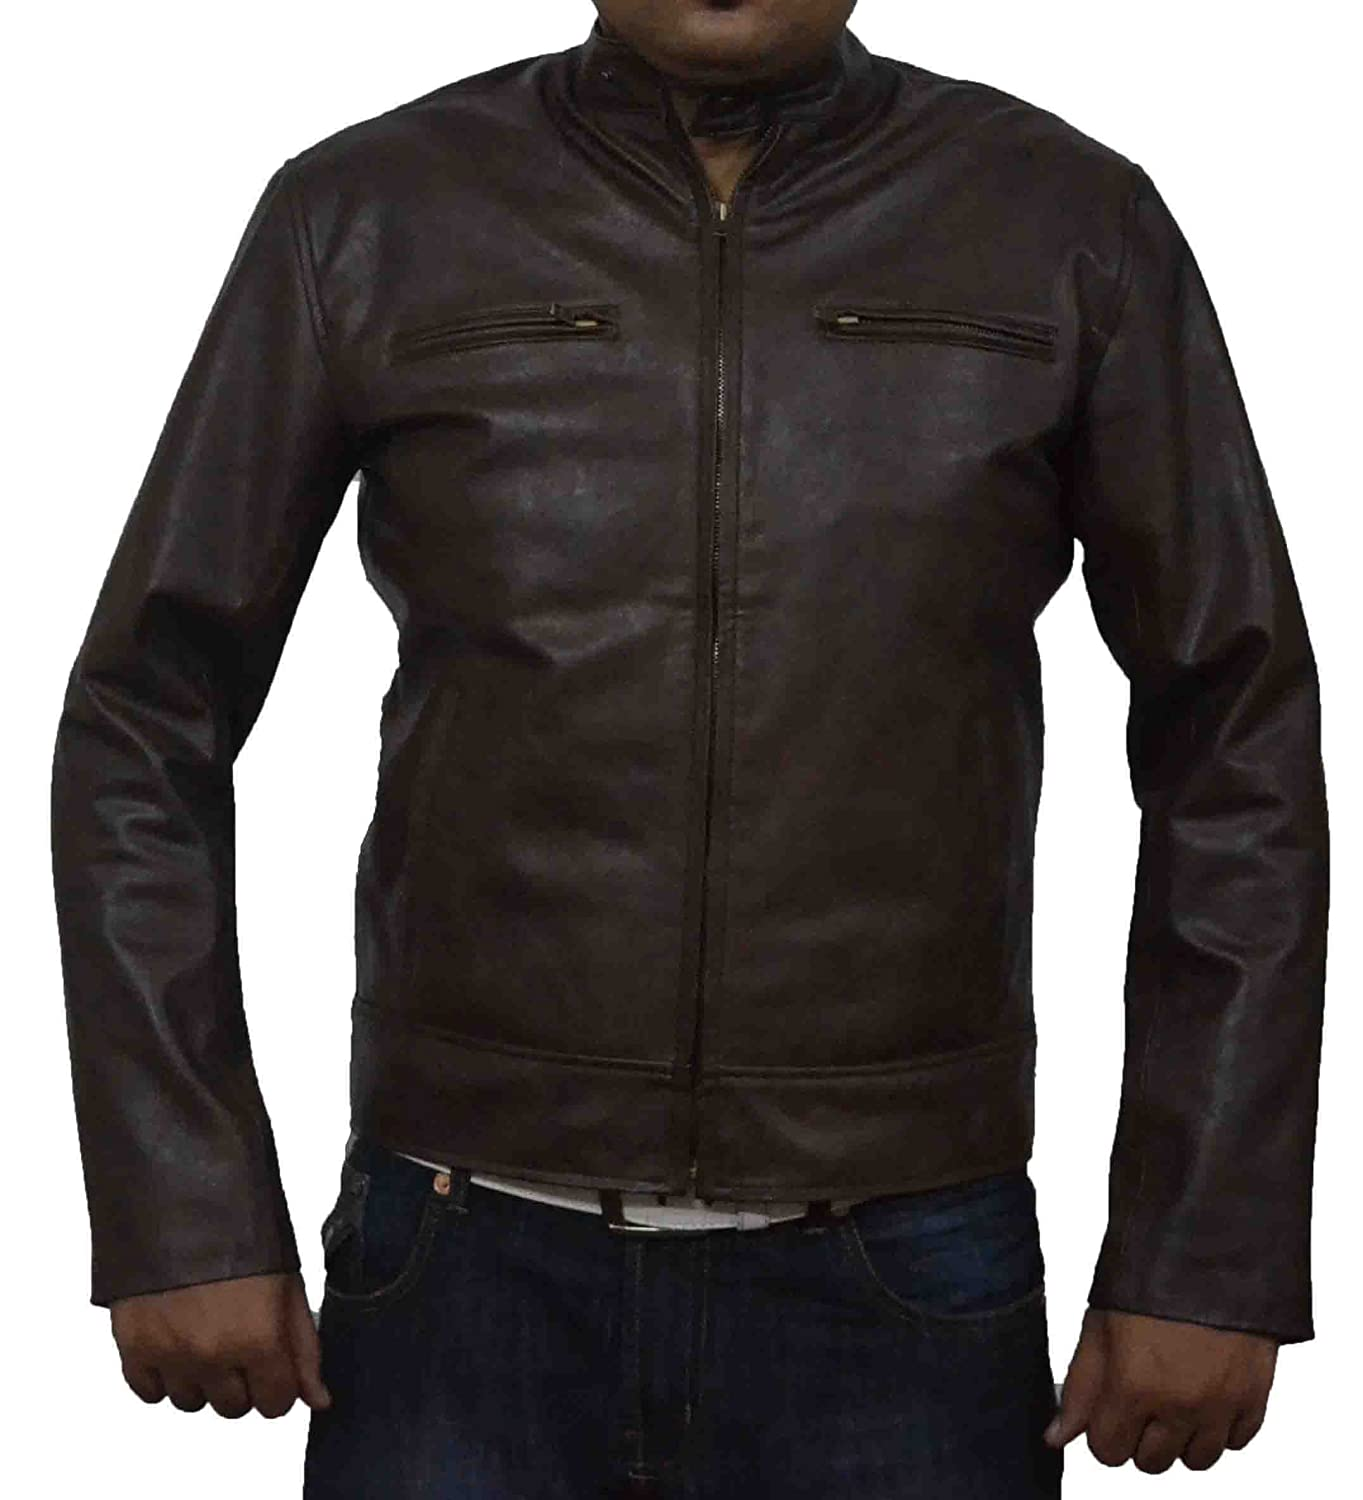 HLS Mark Welhberg Contraband Coffee Brown antique Real Cowhide Leather Jacket